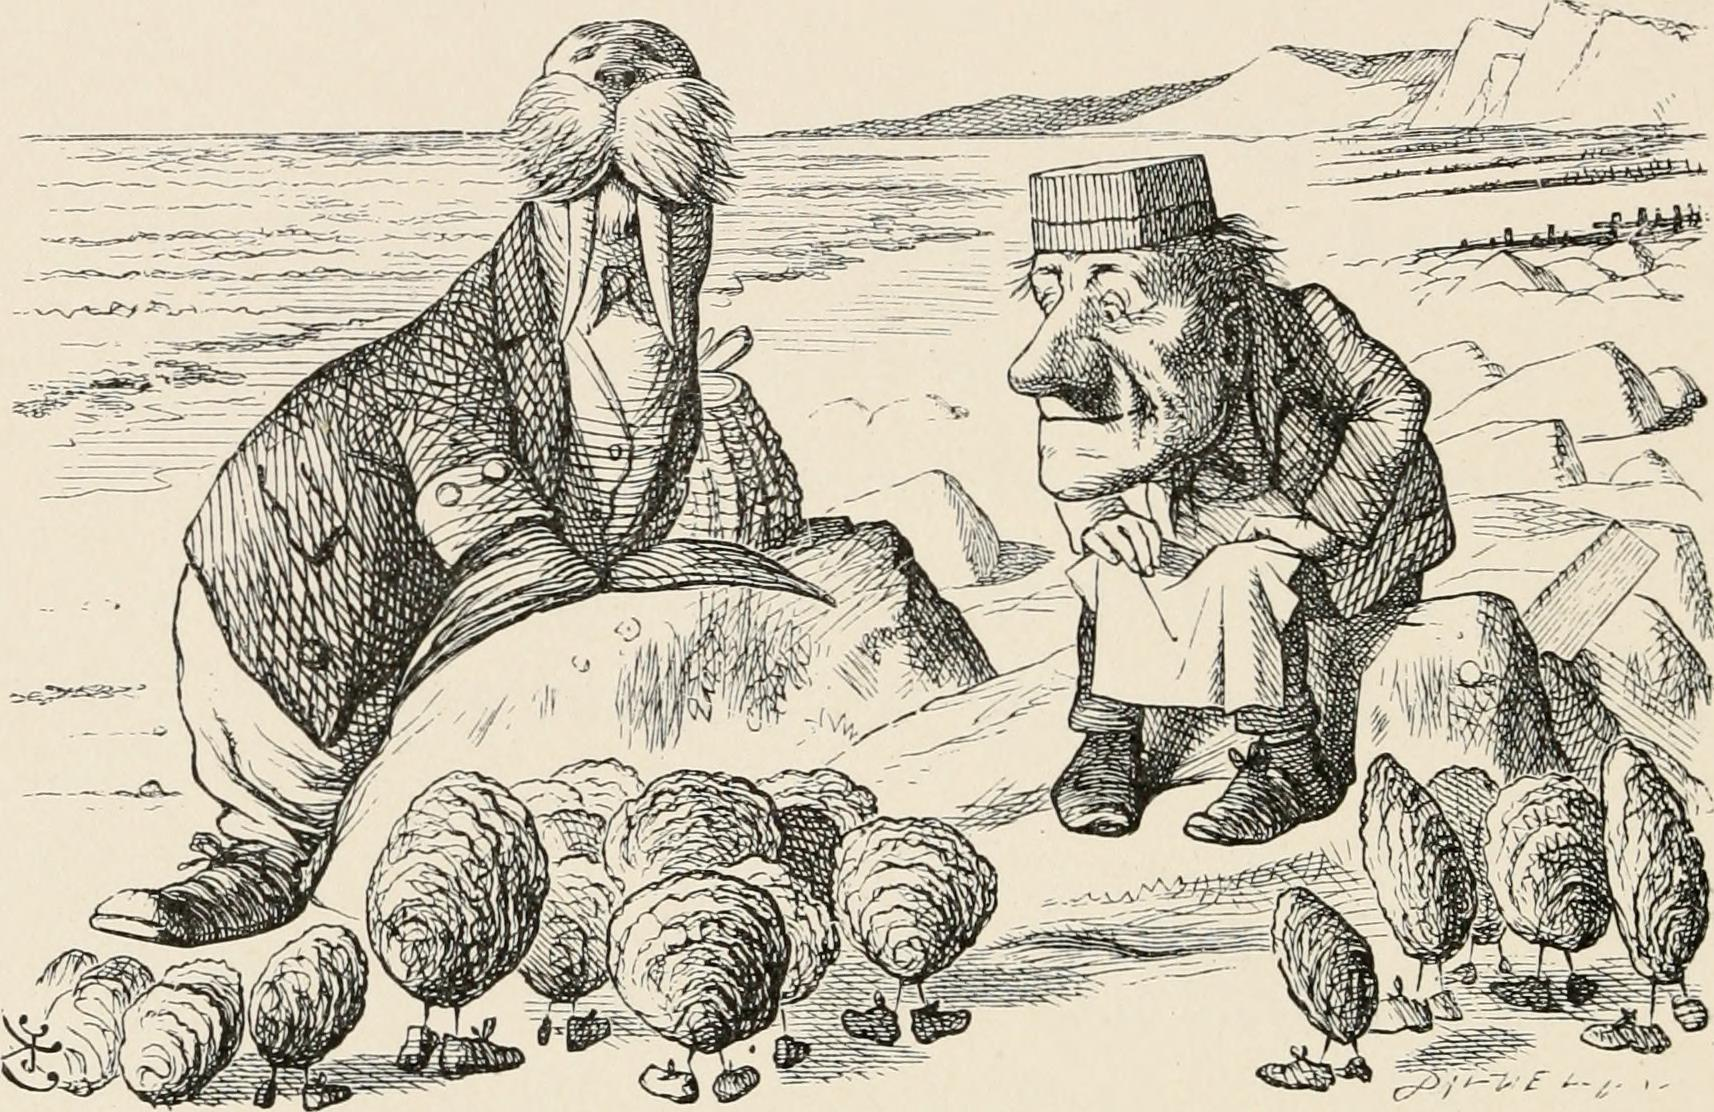 Sir John Tenniel's illustration of the Walrus and the Carpenter for Lewis Carroll's classic 'Through the looking glass and what Alice found there'